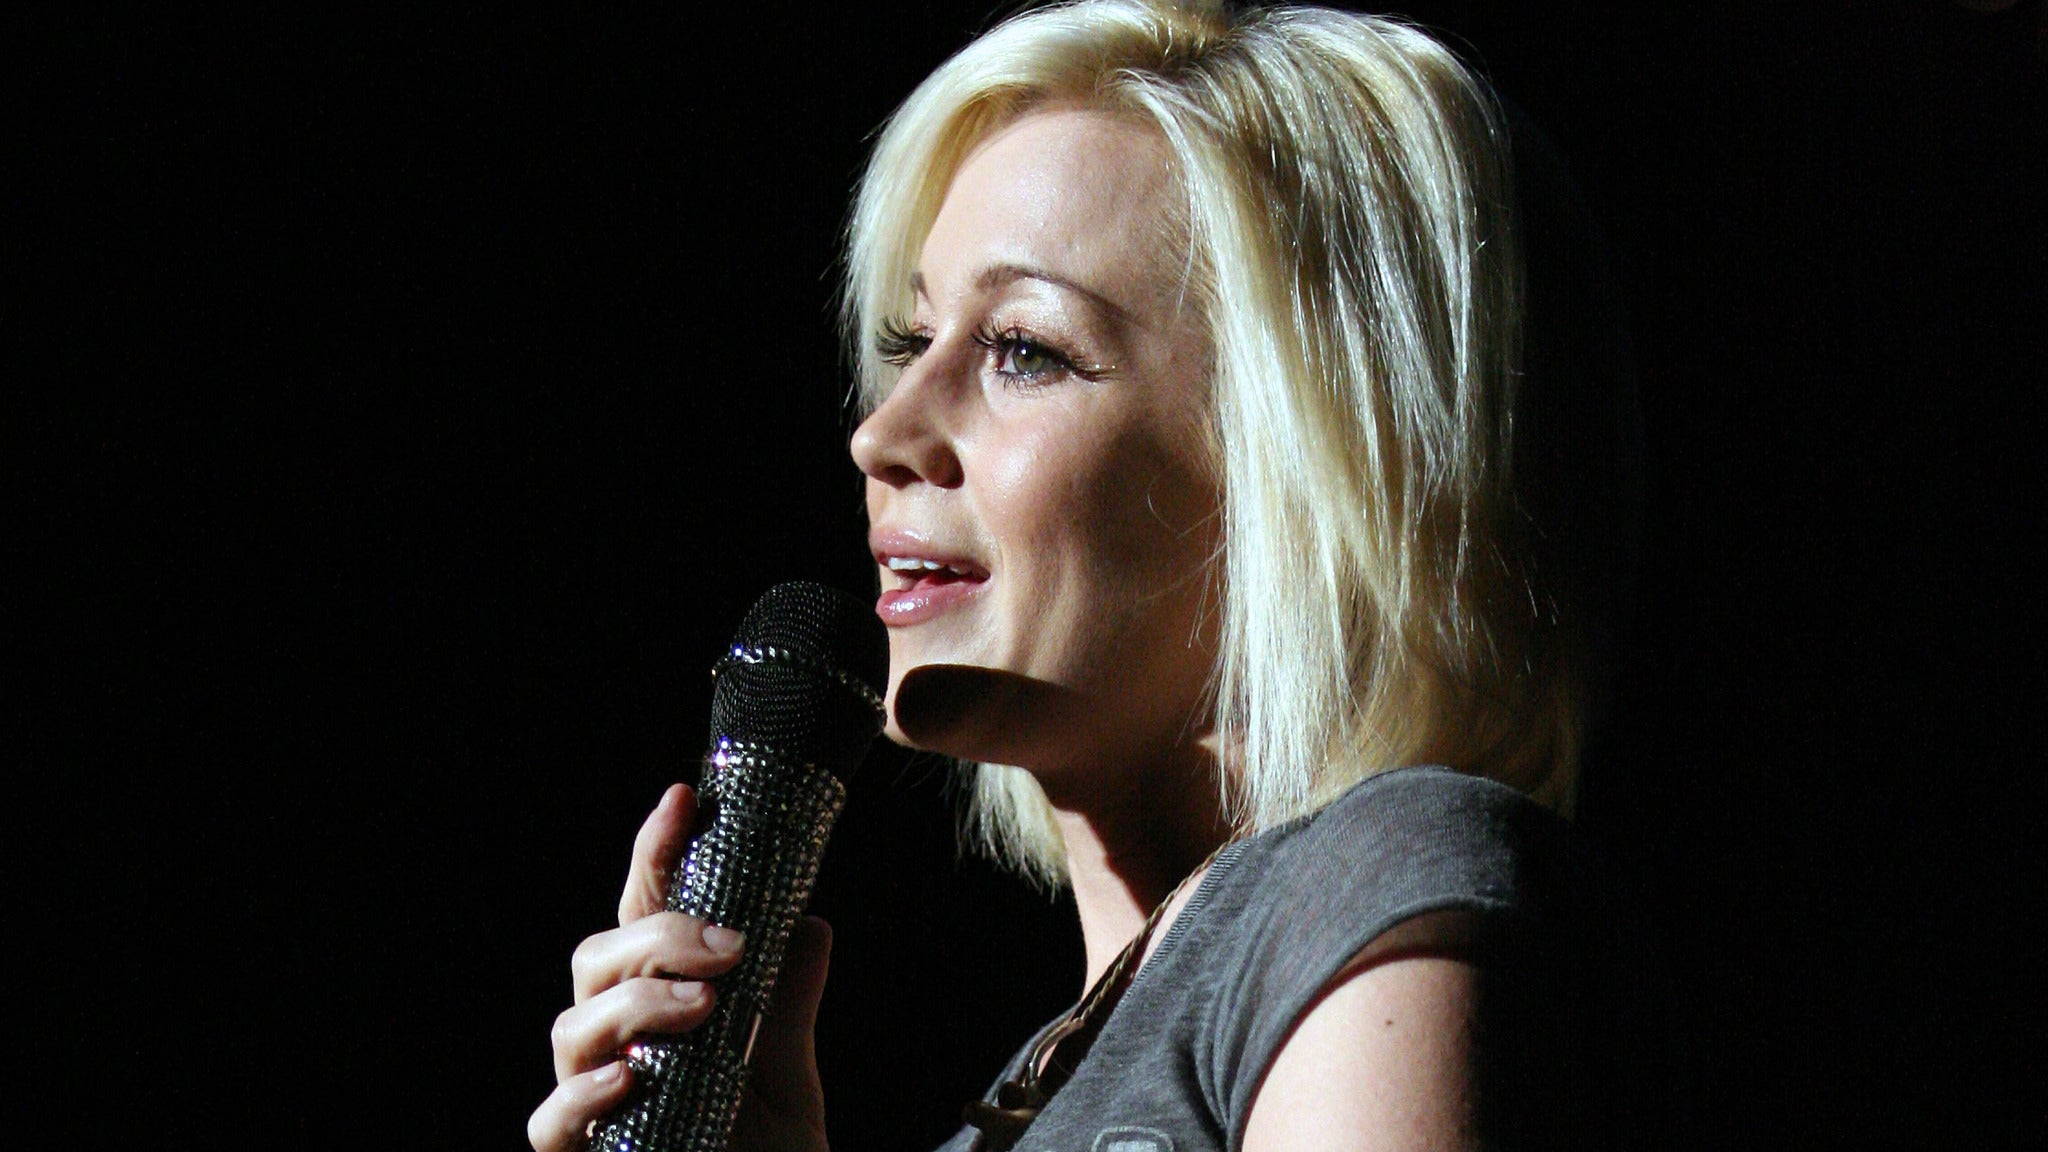 Kellie Pickler at Morongo Casino Resort and Spa - Cabazon, CA 92230